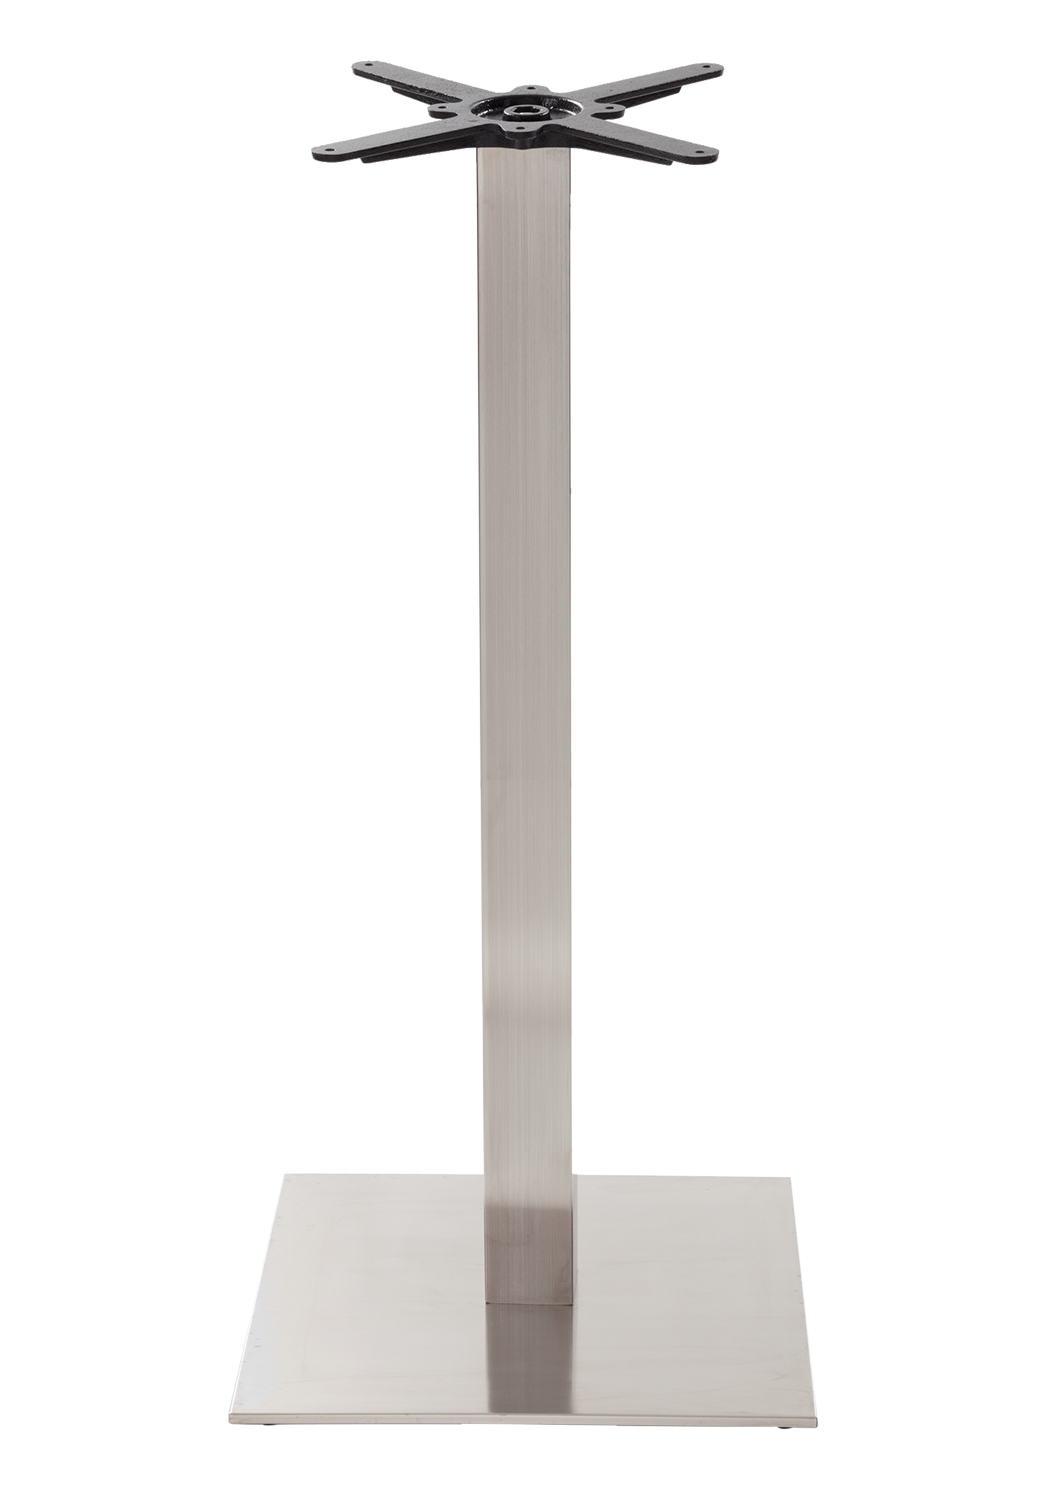 Square stainless steel table base - Large - Poseur height - 1050 mm